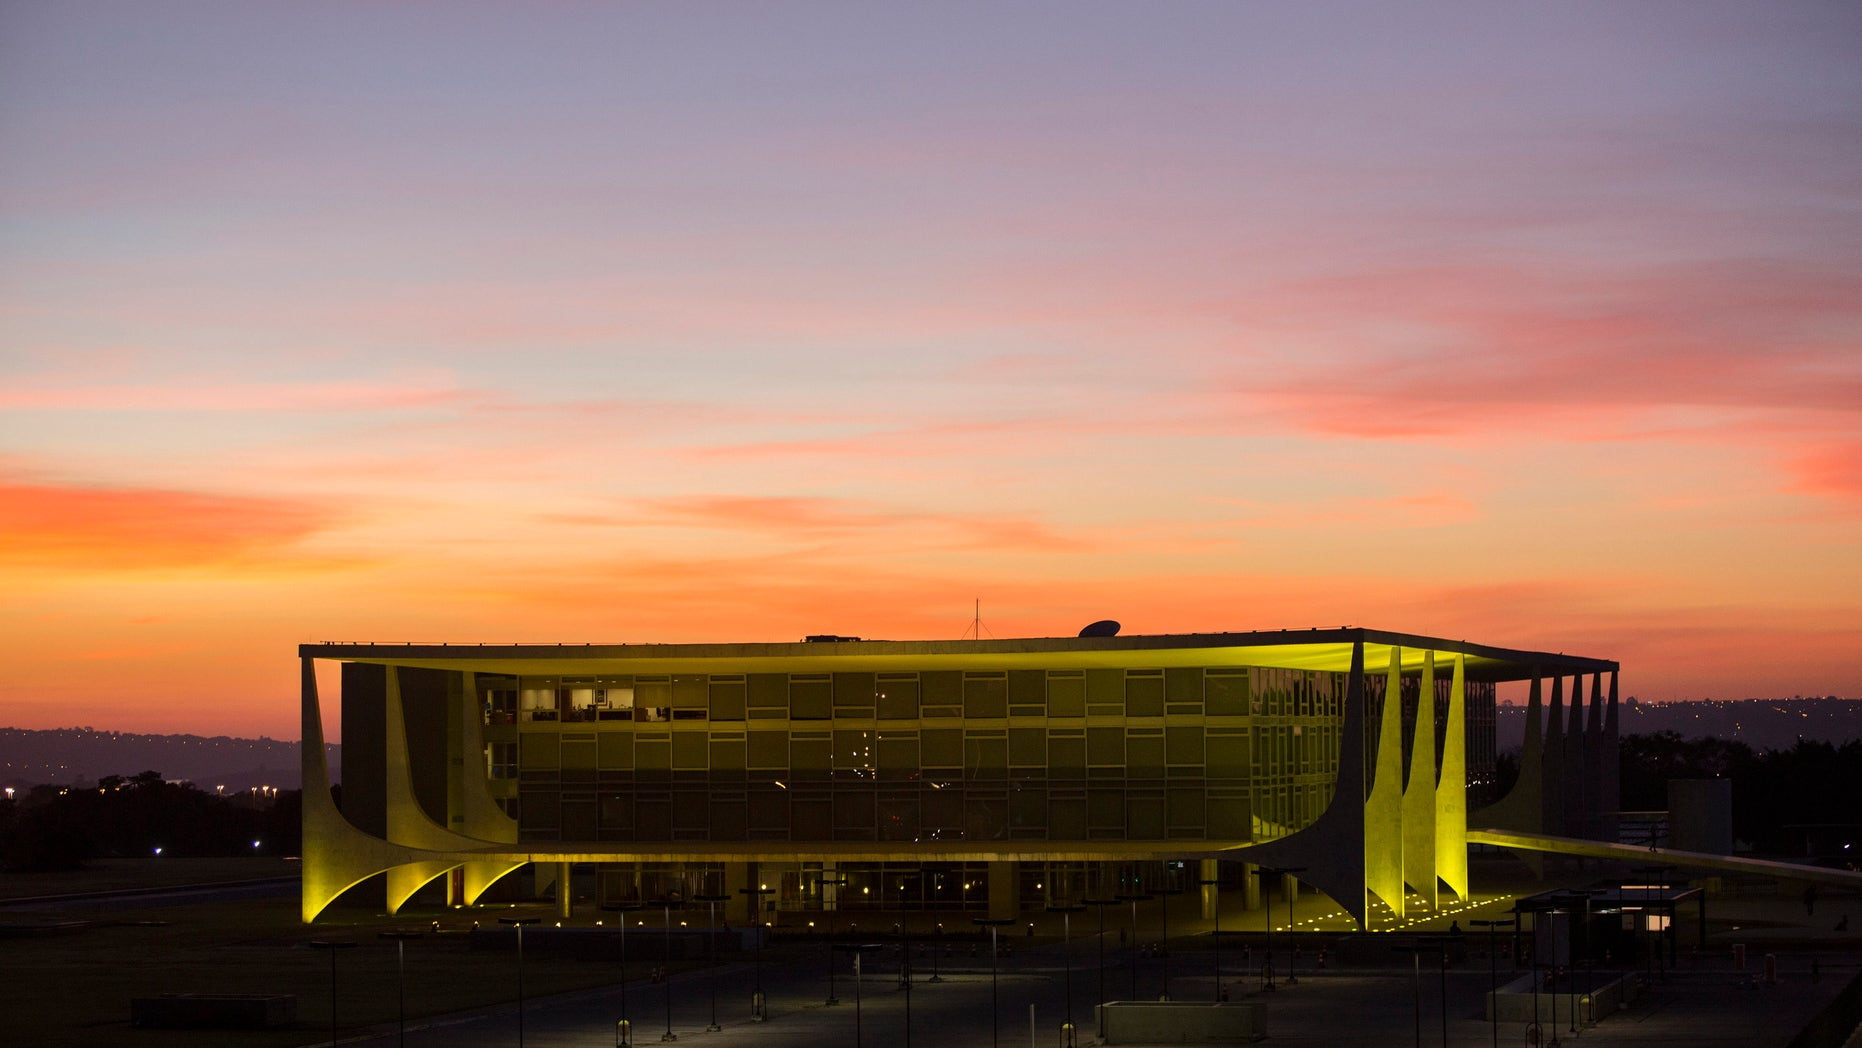 FILE - In this May 12, 2016, file photo, Planalto presidential palace during sunrise in Brasilia, Brazil, after the Senate voted to suspend President Dilma Rousseff pending an impeachment trial. For the sake of the nationâs 200 million people, and for all the South American nations whose fortunes are tied to Brazilâs powerhouse economy, one hopes that her vice president, now acting President, Michel Temer know what to do. (AP Photo/Felipe Dana)